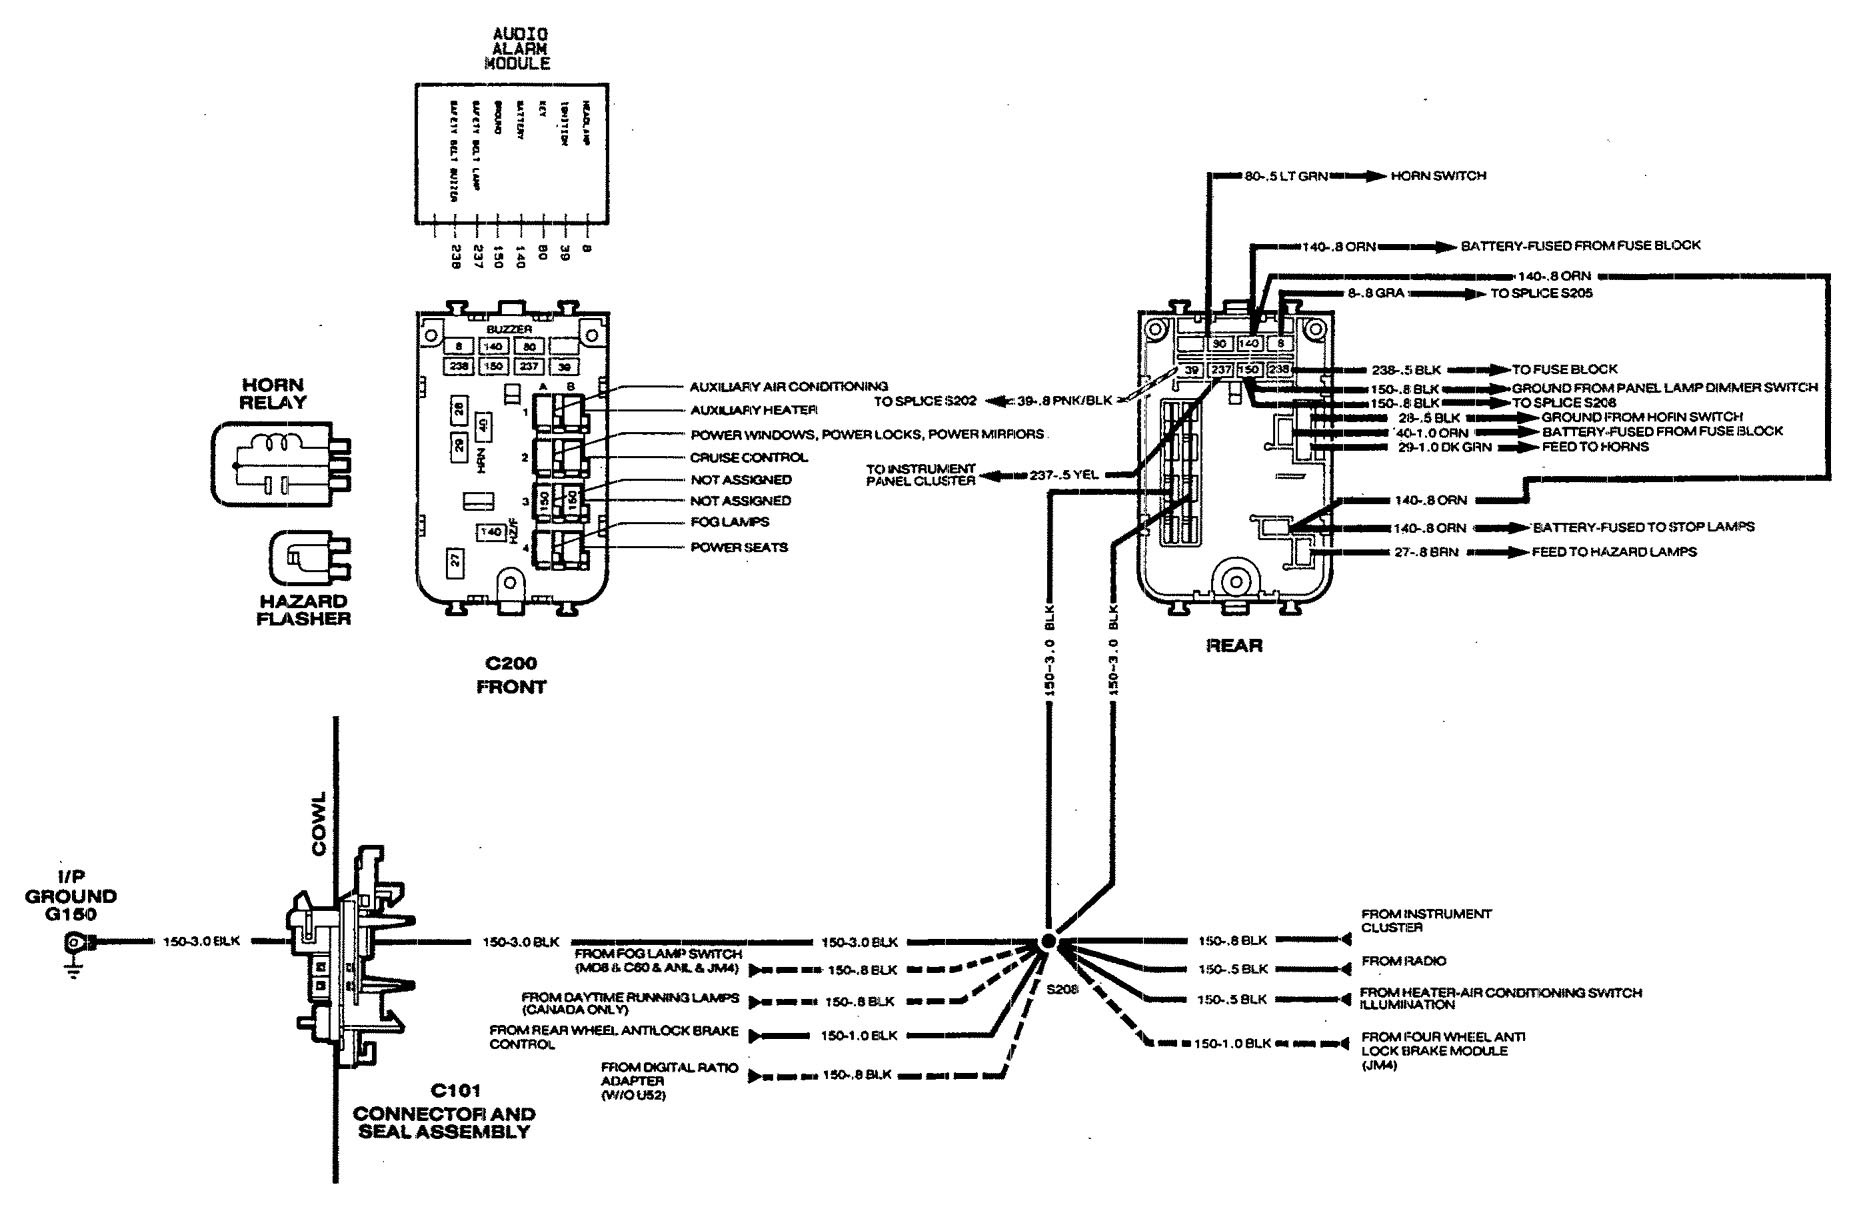 chevrolet astro 1990 wiring diagrams fuse box For a 1995 Astro Van Fuse Box  Diagram Astro